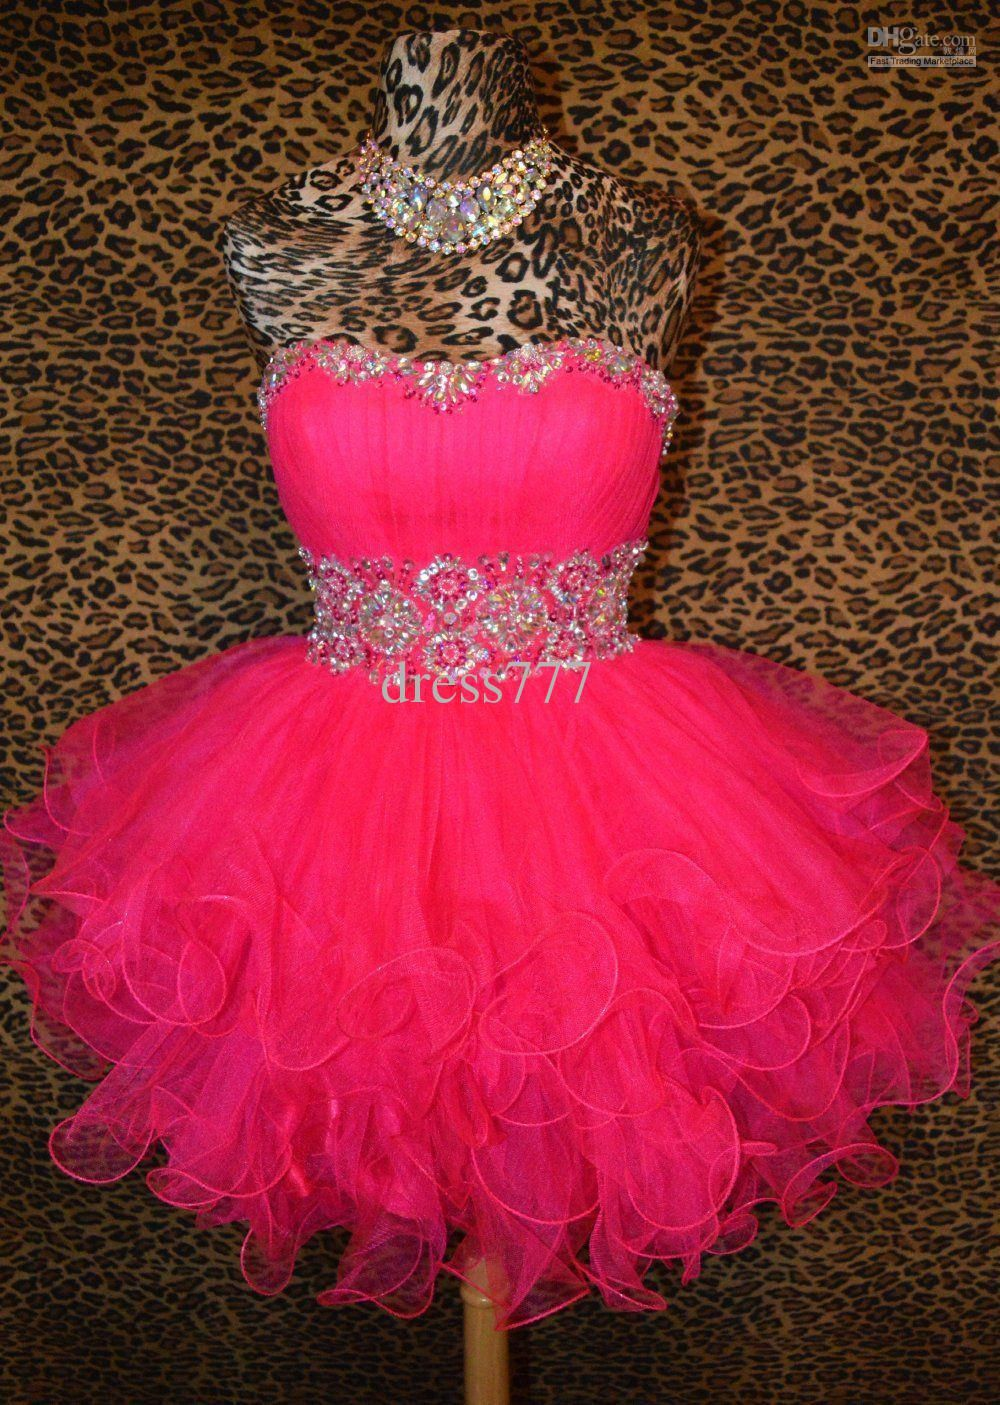 Fuschia Pink Short Prom Dresses | Special Occasion Looks ...